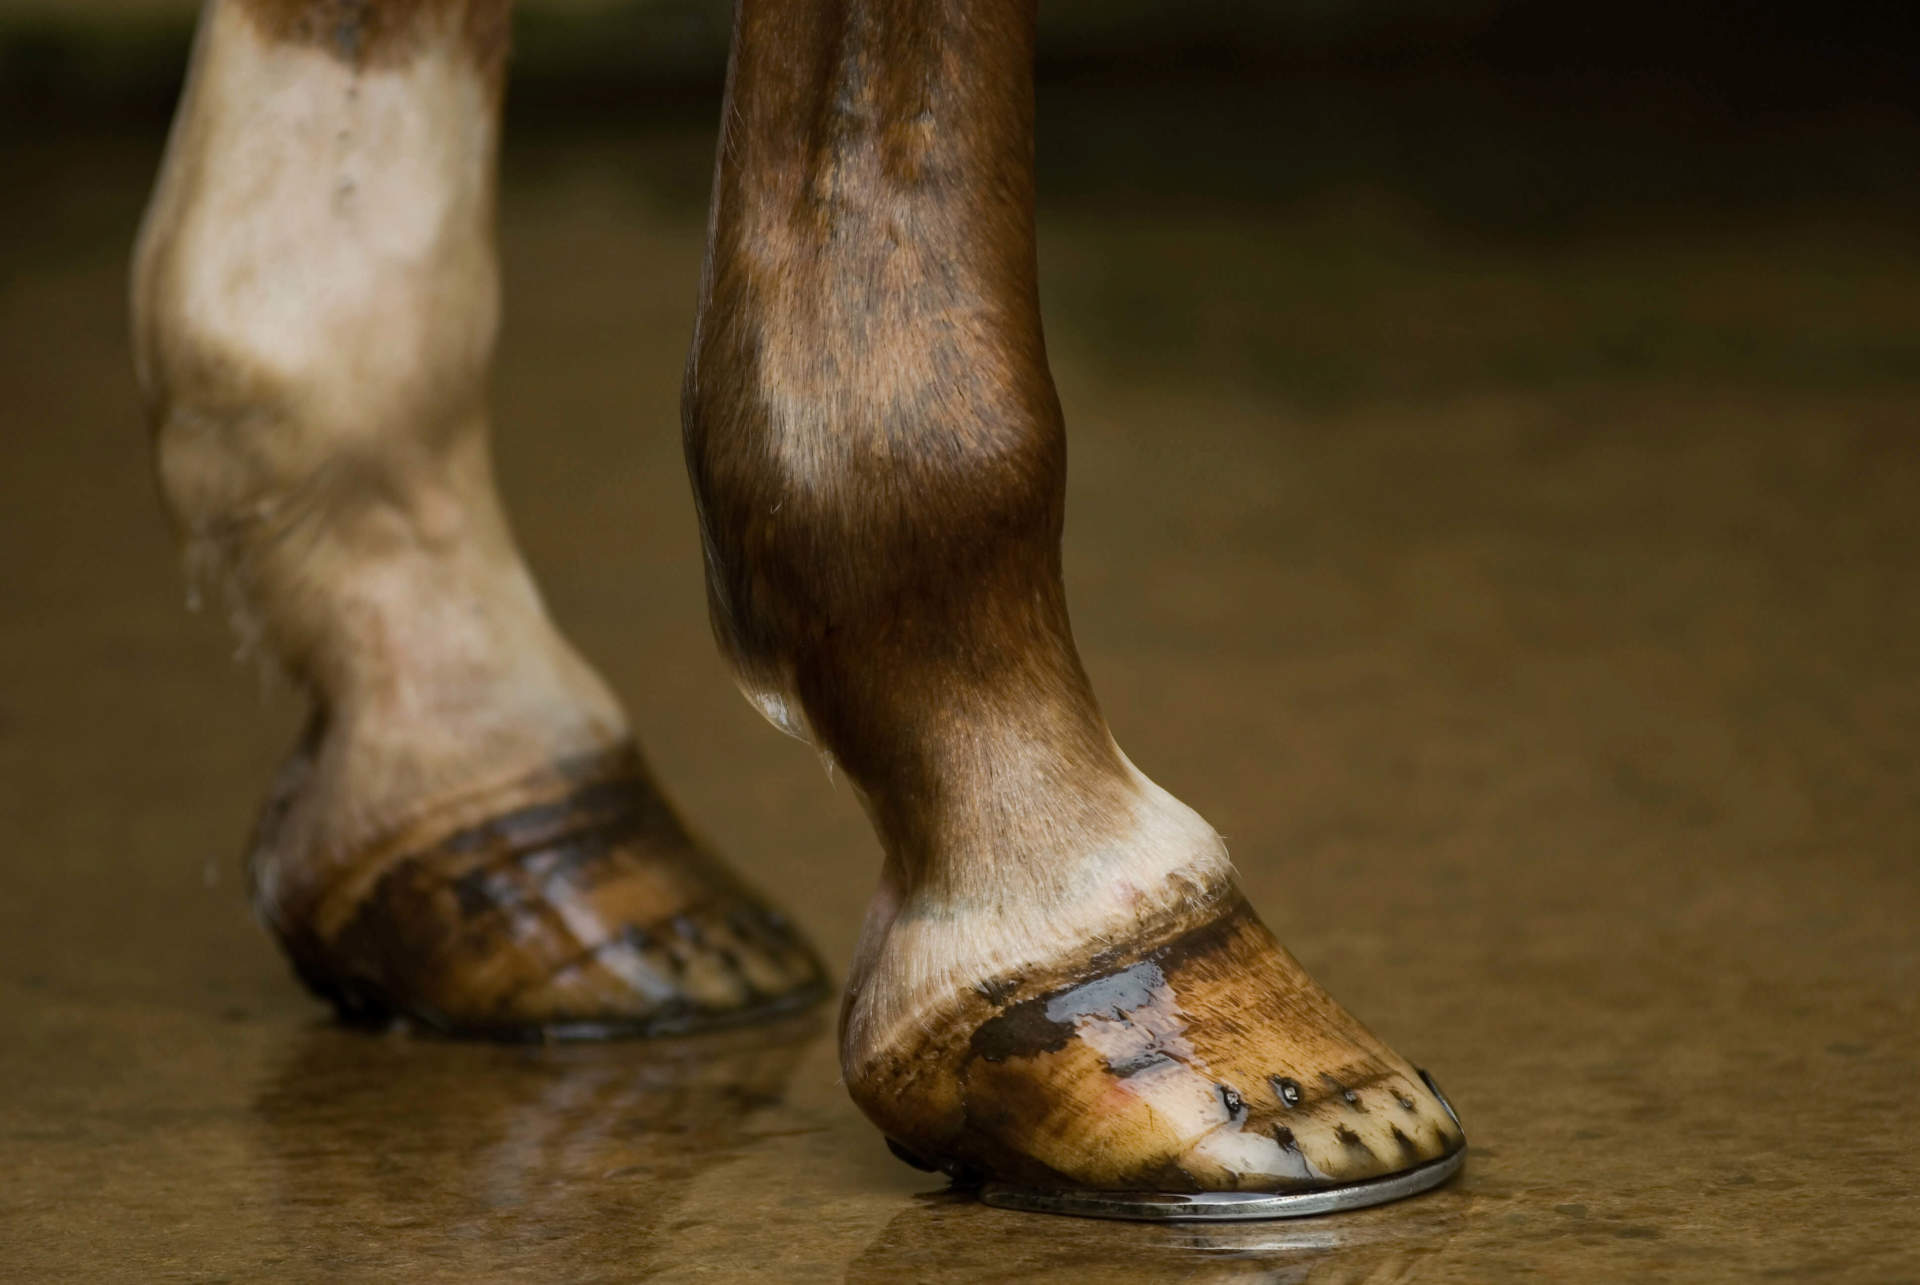 Hoof Care, Inside and Out